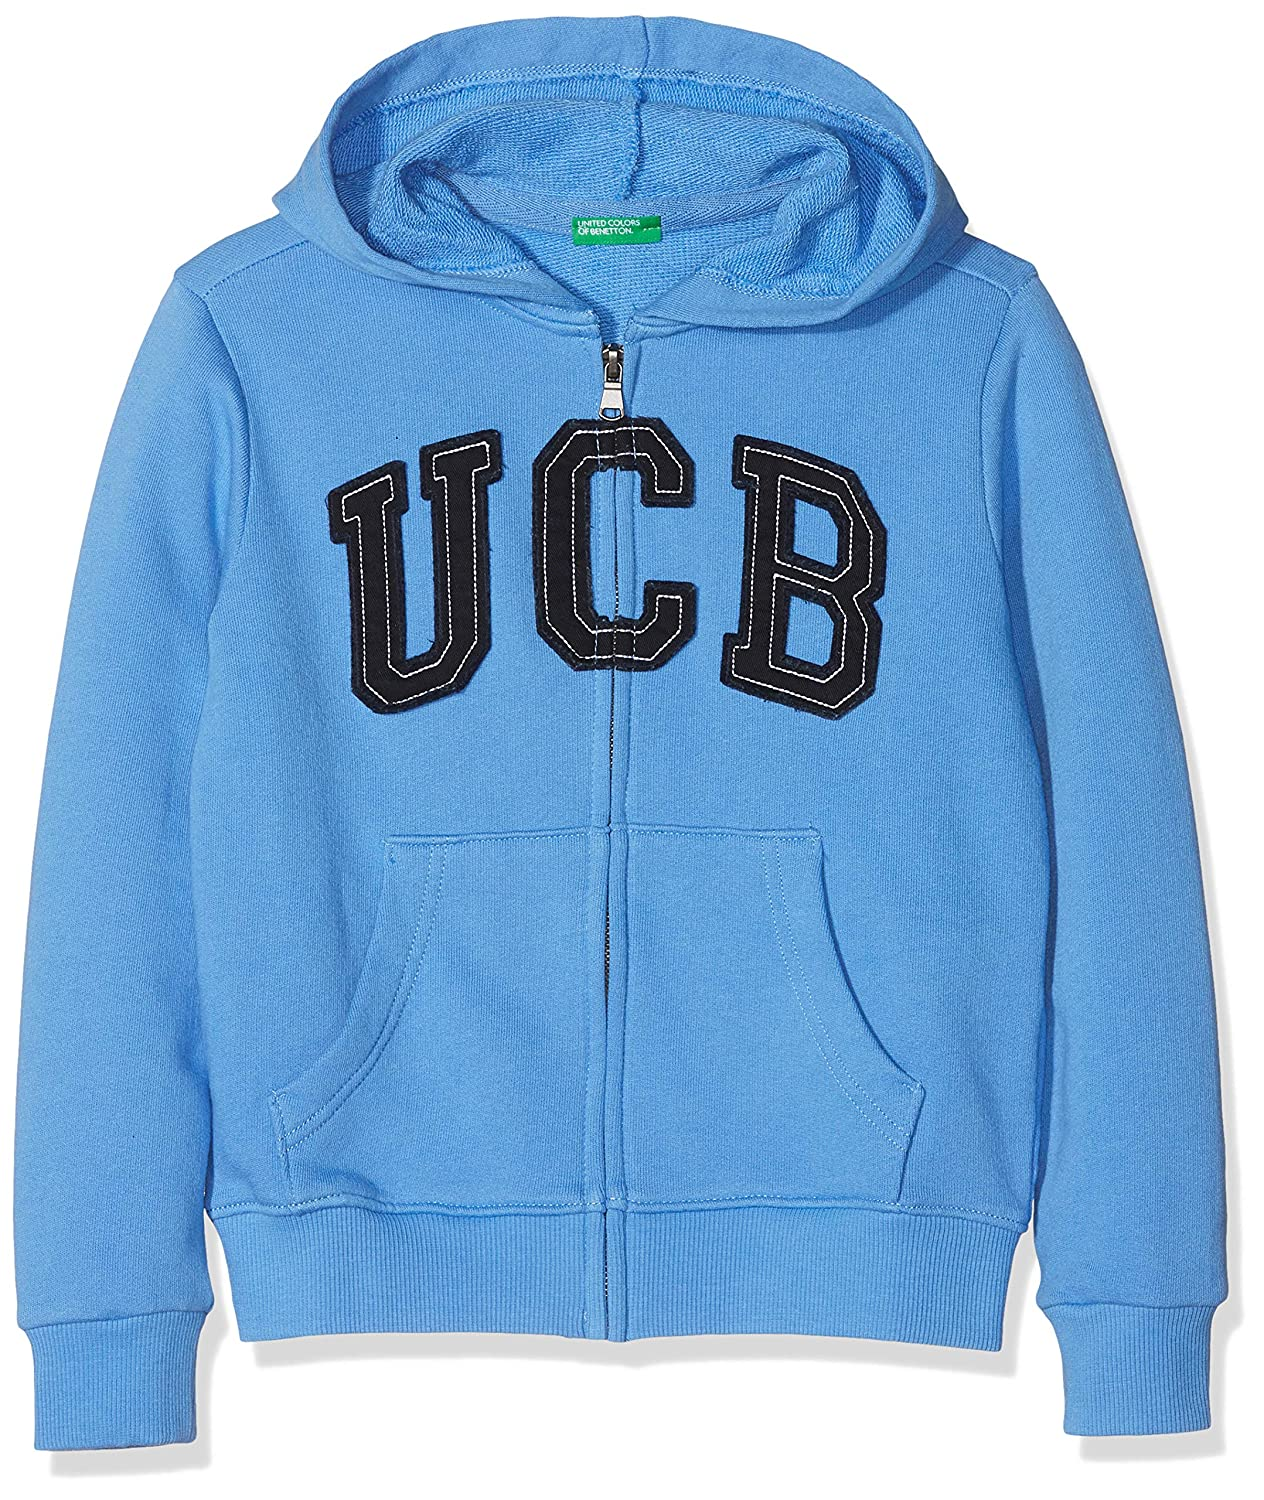 United Colors of Benetton Jacket W/Hood L/S, Chaqueta para Niños: Amazon.es: Ropa y accesorios